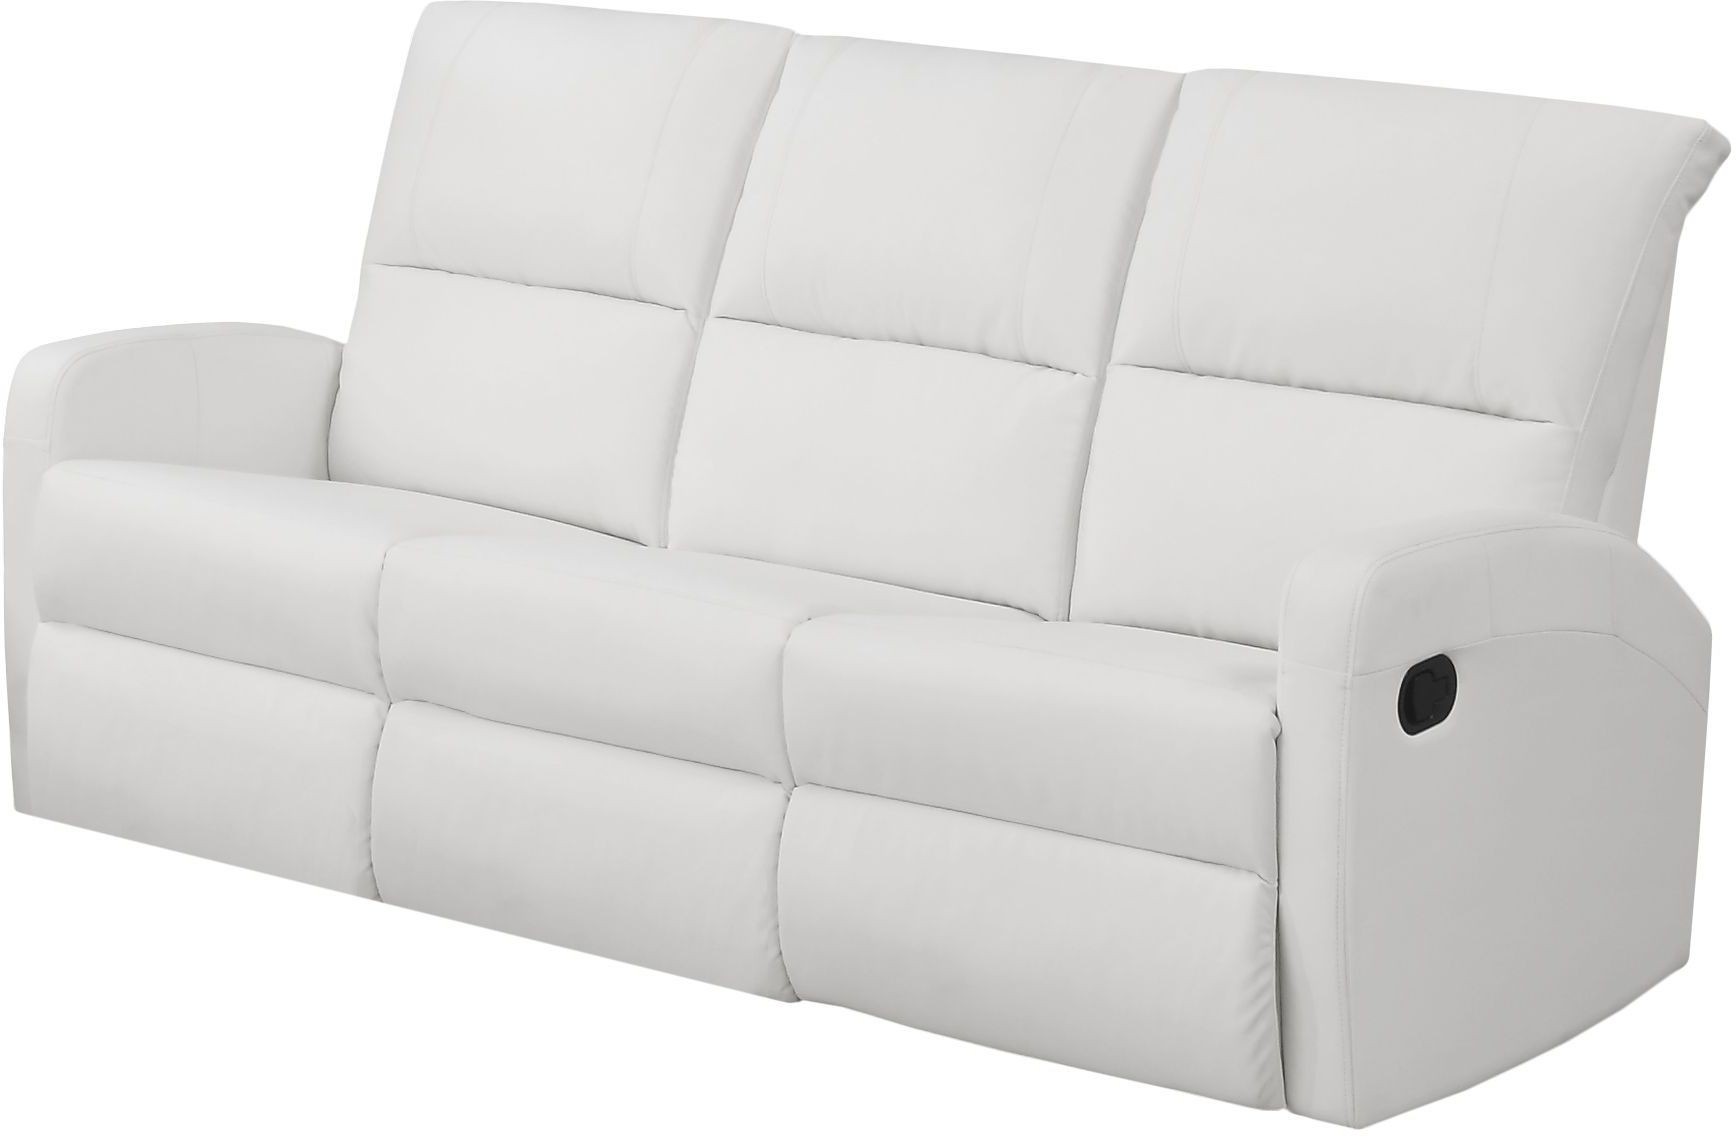 84WH 3 White Bonded Leather Reclining Sofa From Monarch Coleman Furniture